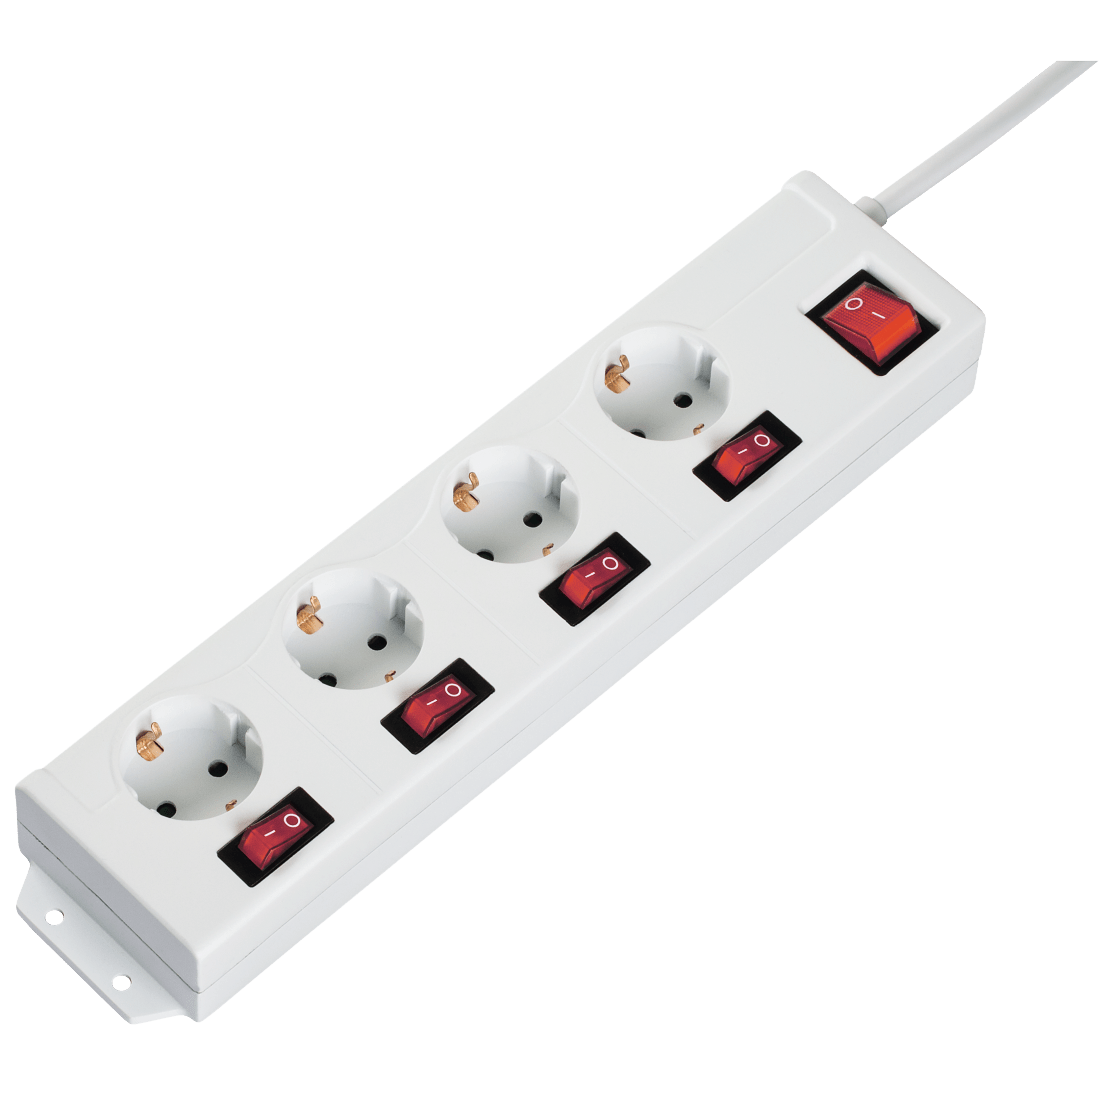 hight resolution of  4 1 multiple socket outlet 4 socket individually switchable white